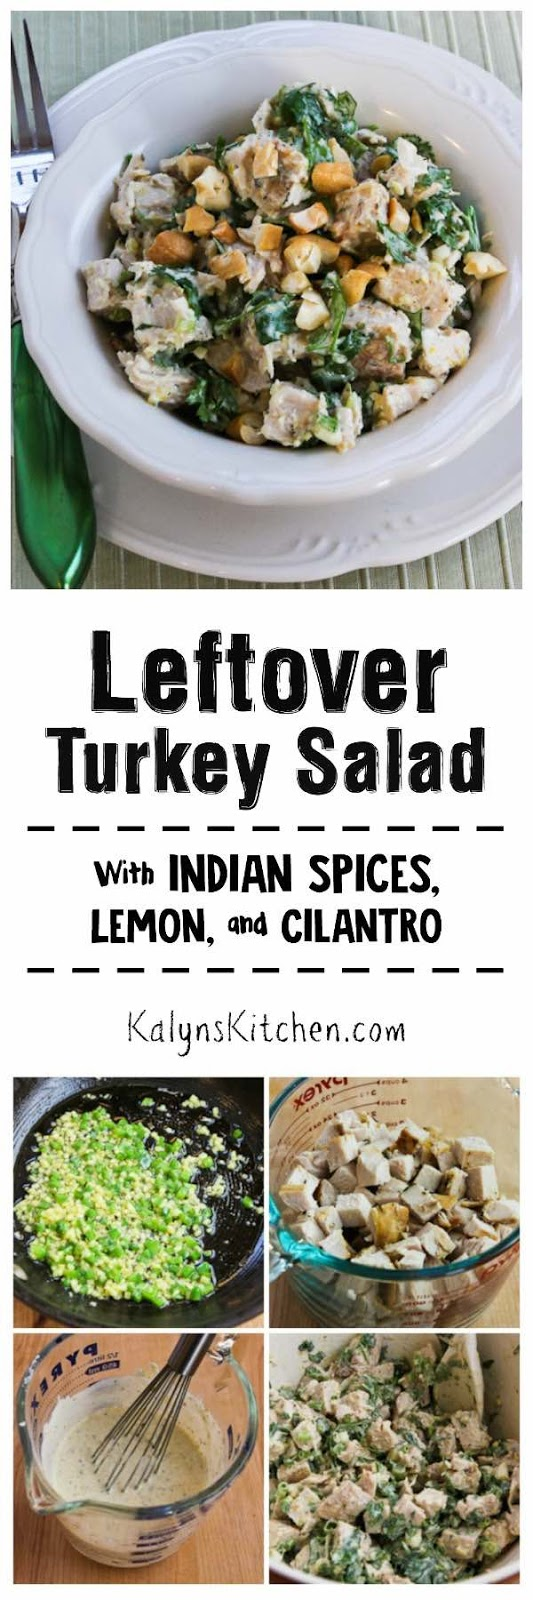 Kalyns Kitchen®Leftover Turkey (or chicken) Salad with Indian